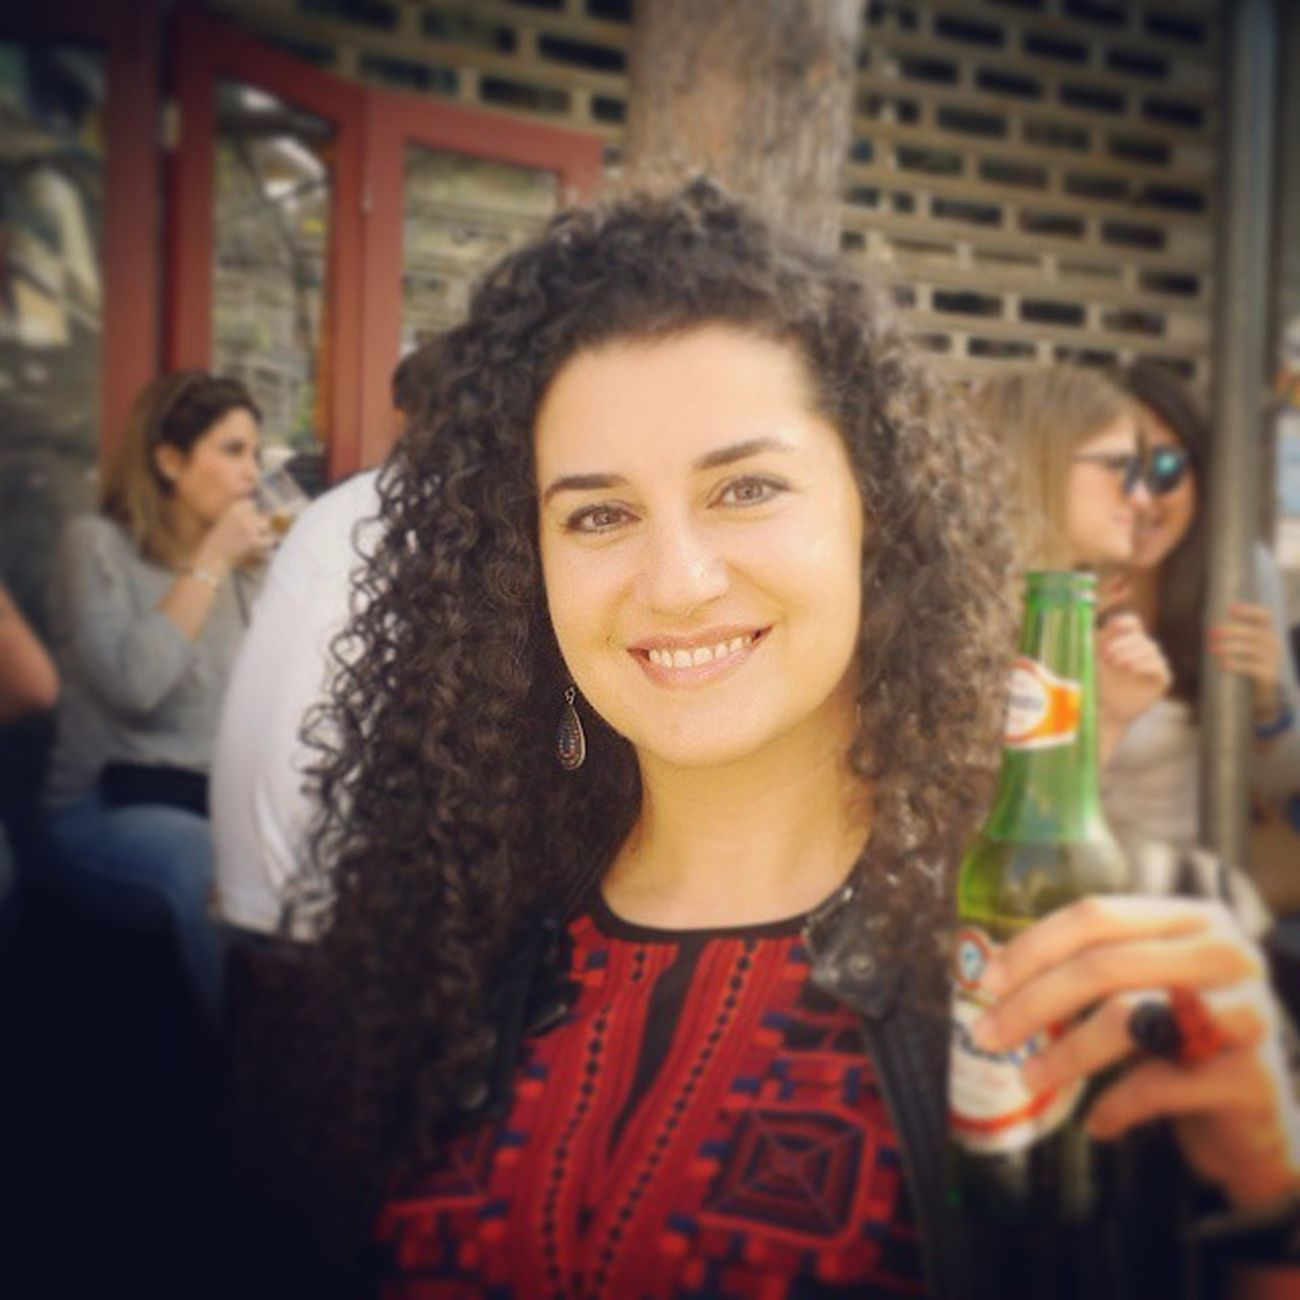 Perfect ending to a perfect day TBT  to last sunday car free day Marmikhael Achrafieh Achrafieh2020 discover armeniastreet lebanon beirut heritage colors architecture throwbackthirsday chilling fun smiles friends family perk perkin @perk_cocktailbar